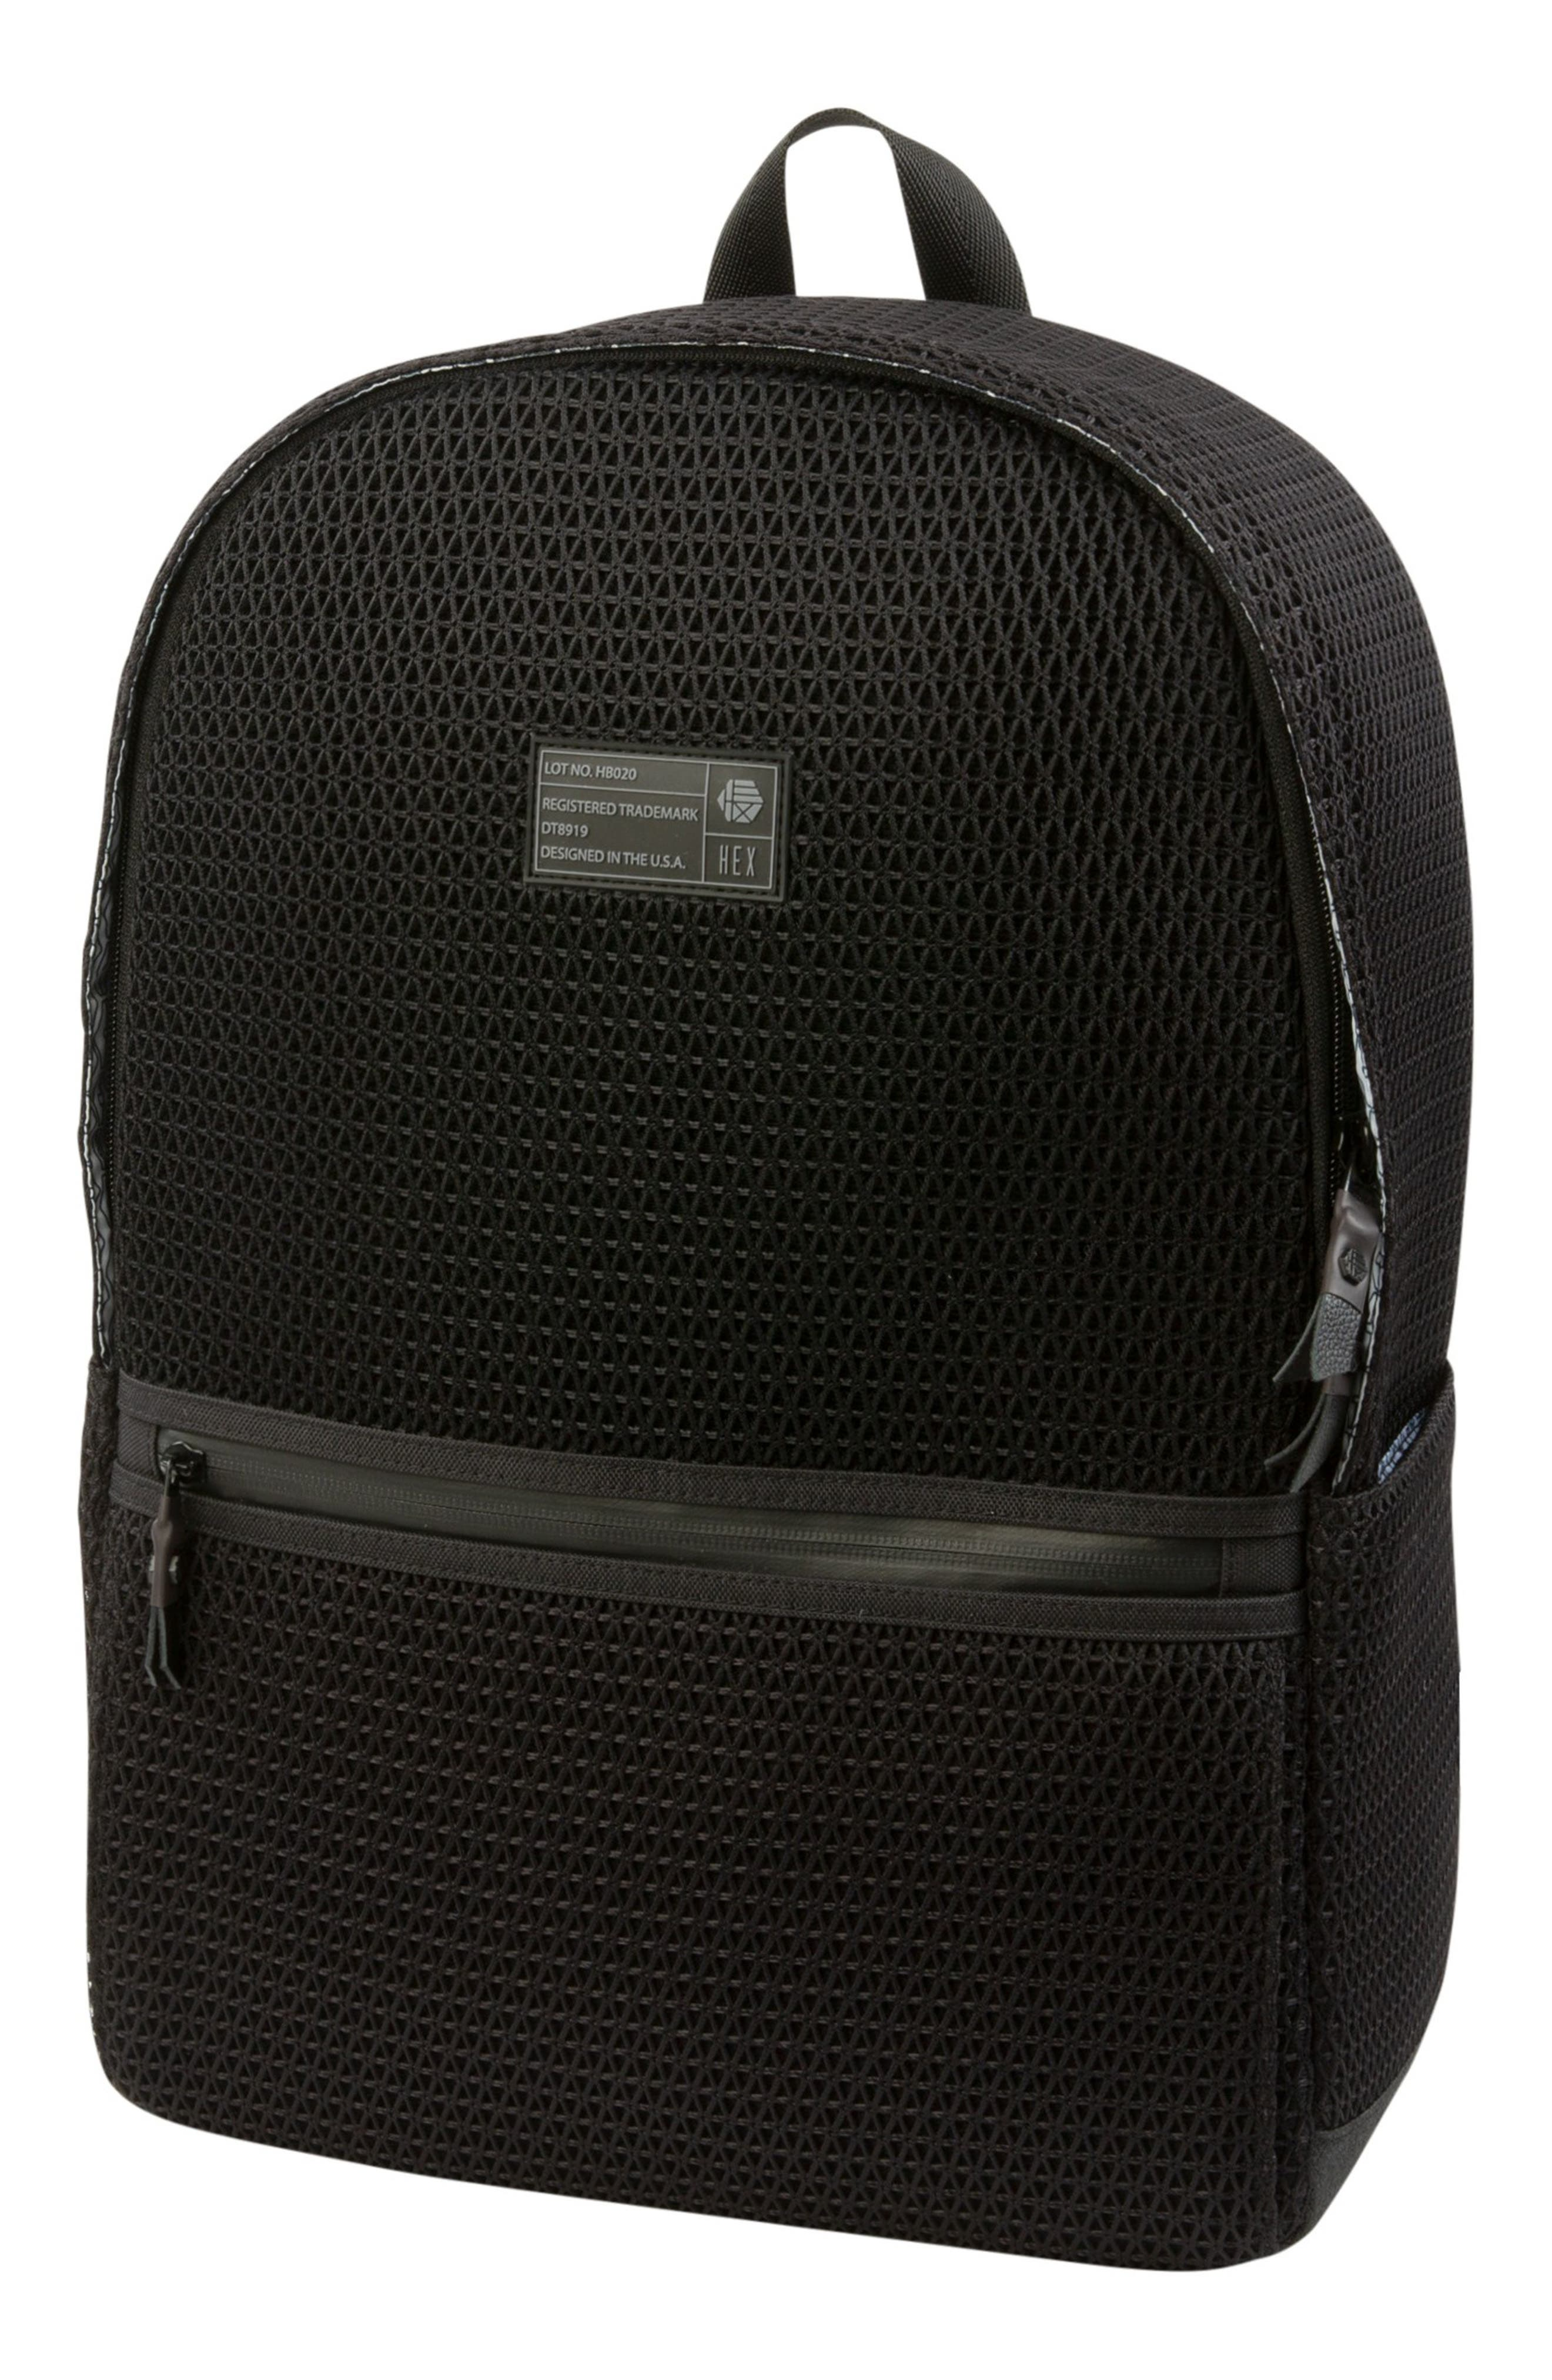 Image of Hex Accessories Matric Logic Backpack